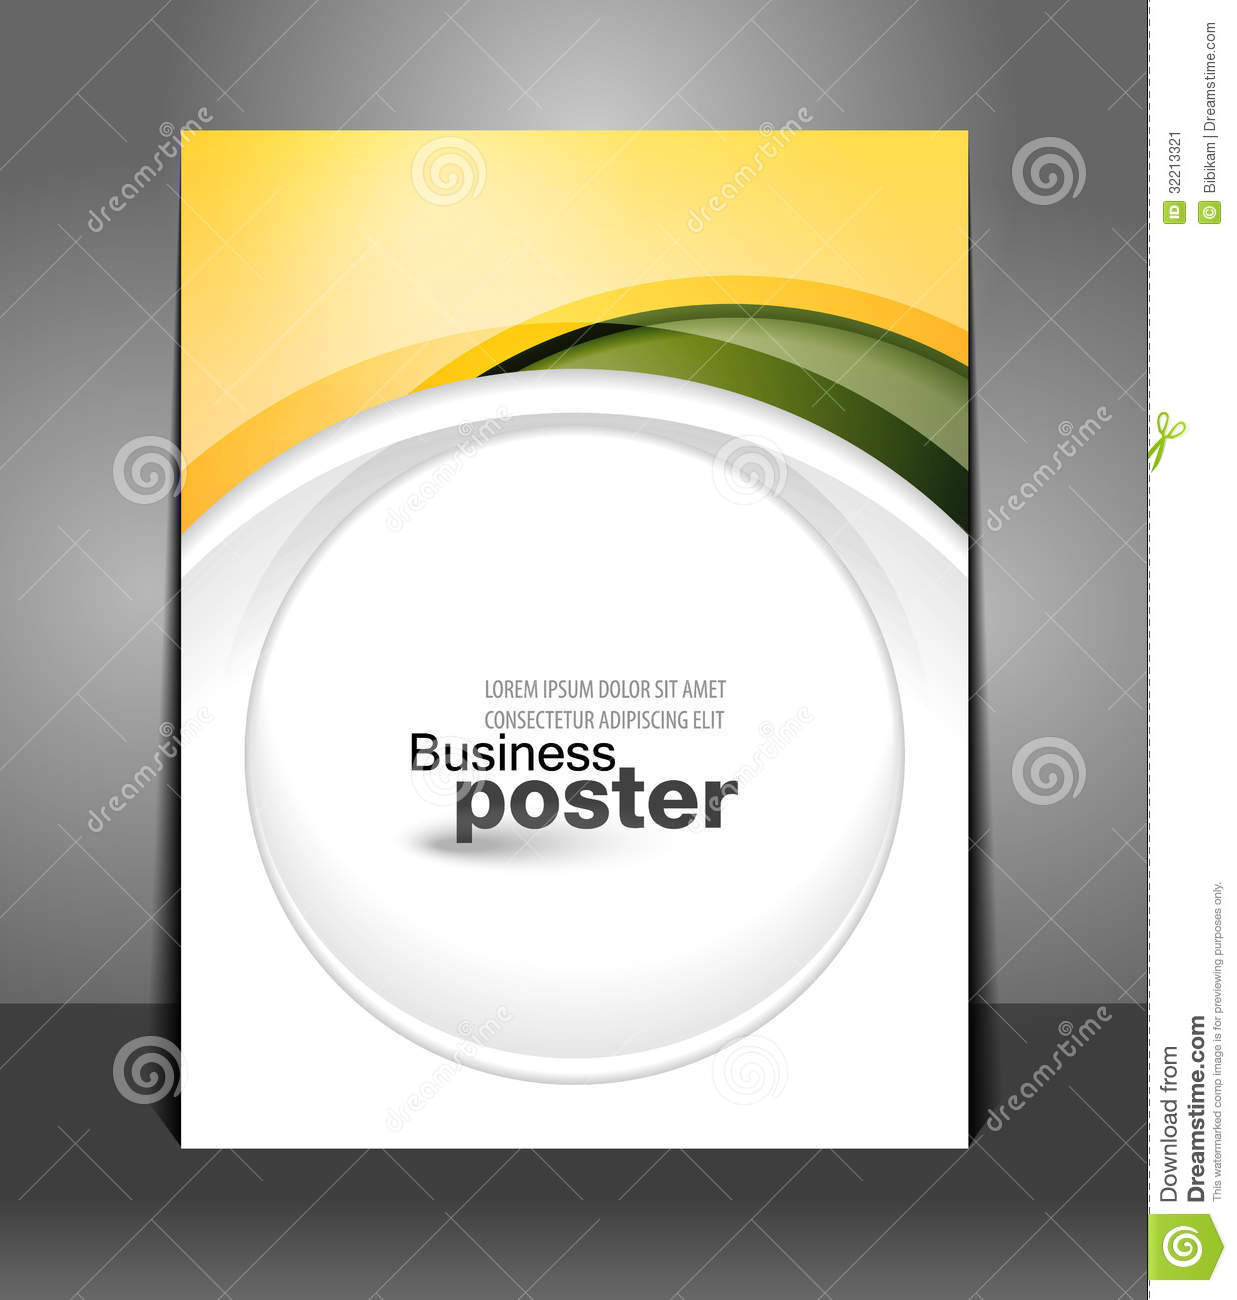 Poster design layout templates - Stylish Presentation Of Business Poster Stock Image Background Business Design Flyer Layout Poster Presentation Stylish Template